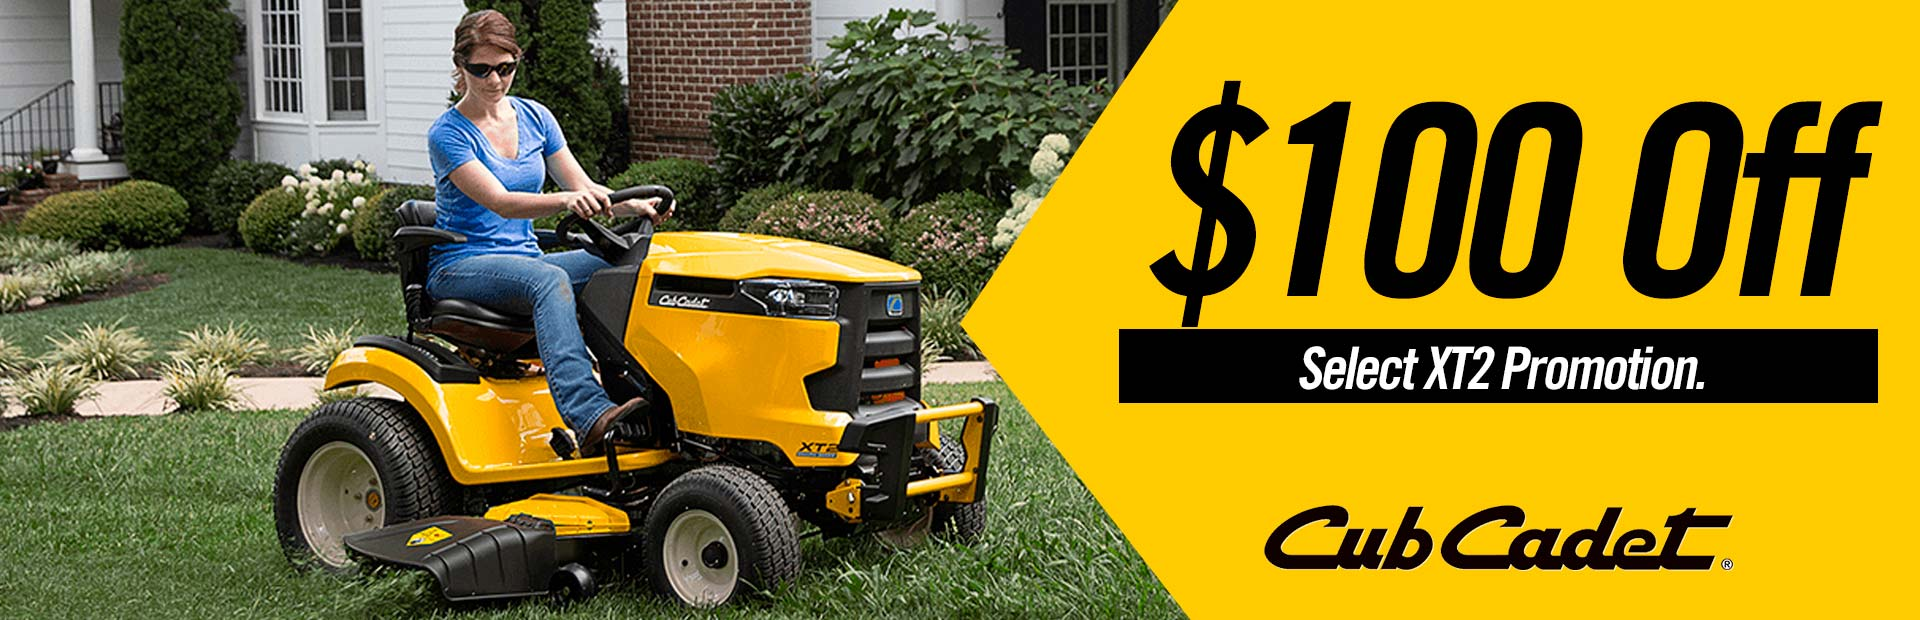 Cub Cadet: $100 Off Select XT2 Promotion